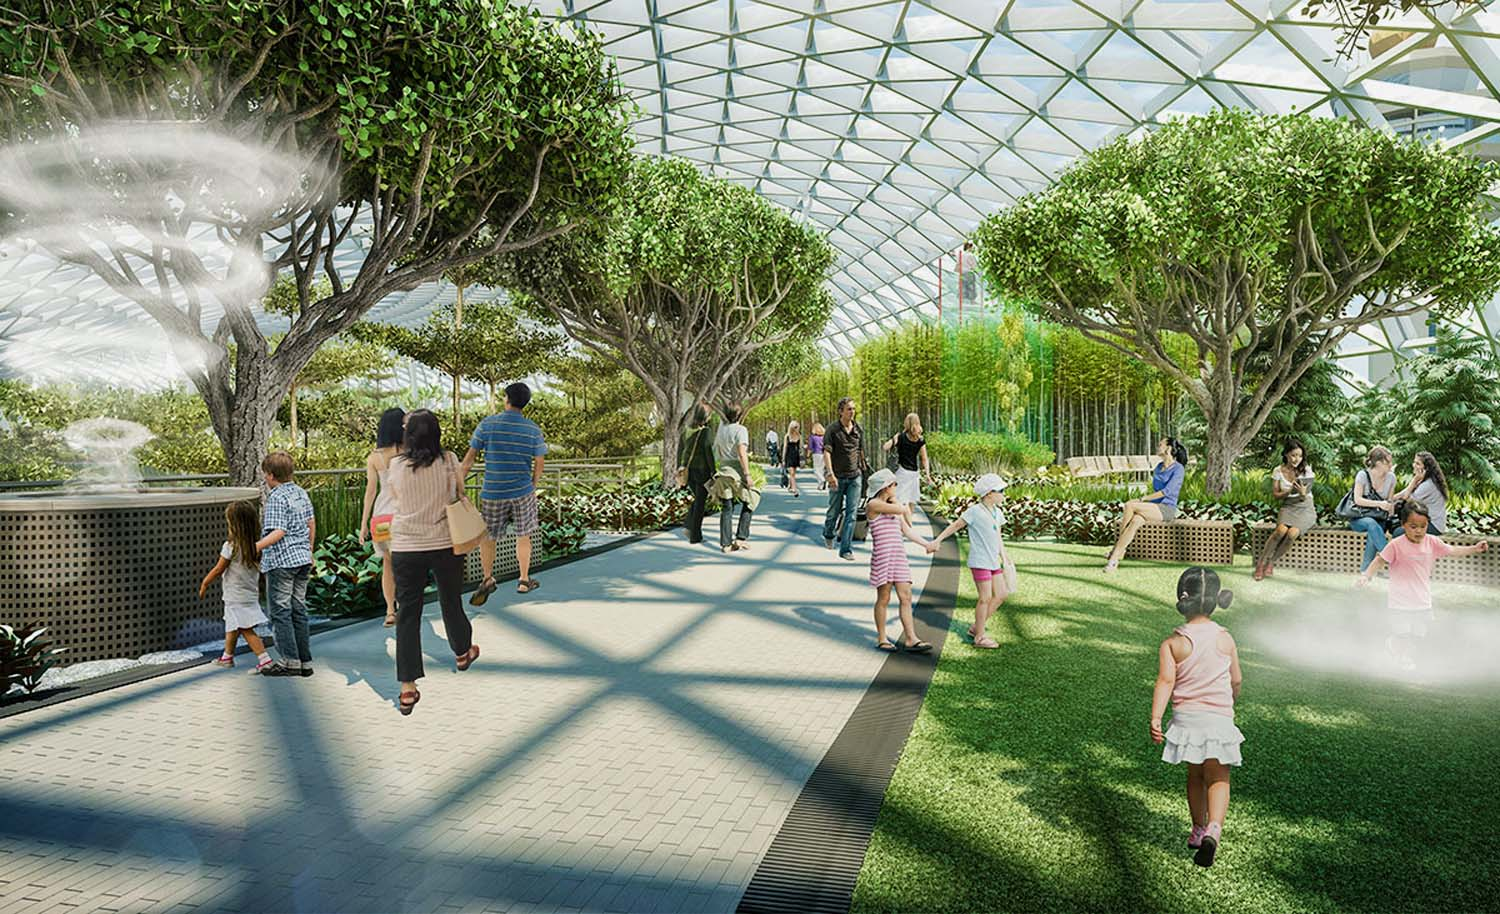 mm_Jewel Changi Airport design by Safdie Architects_10